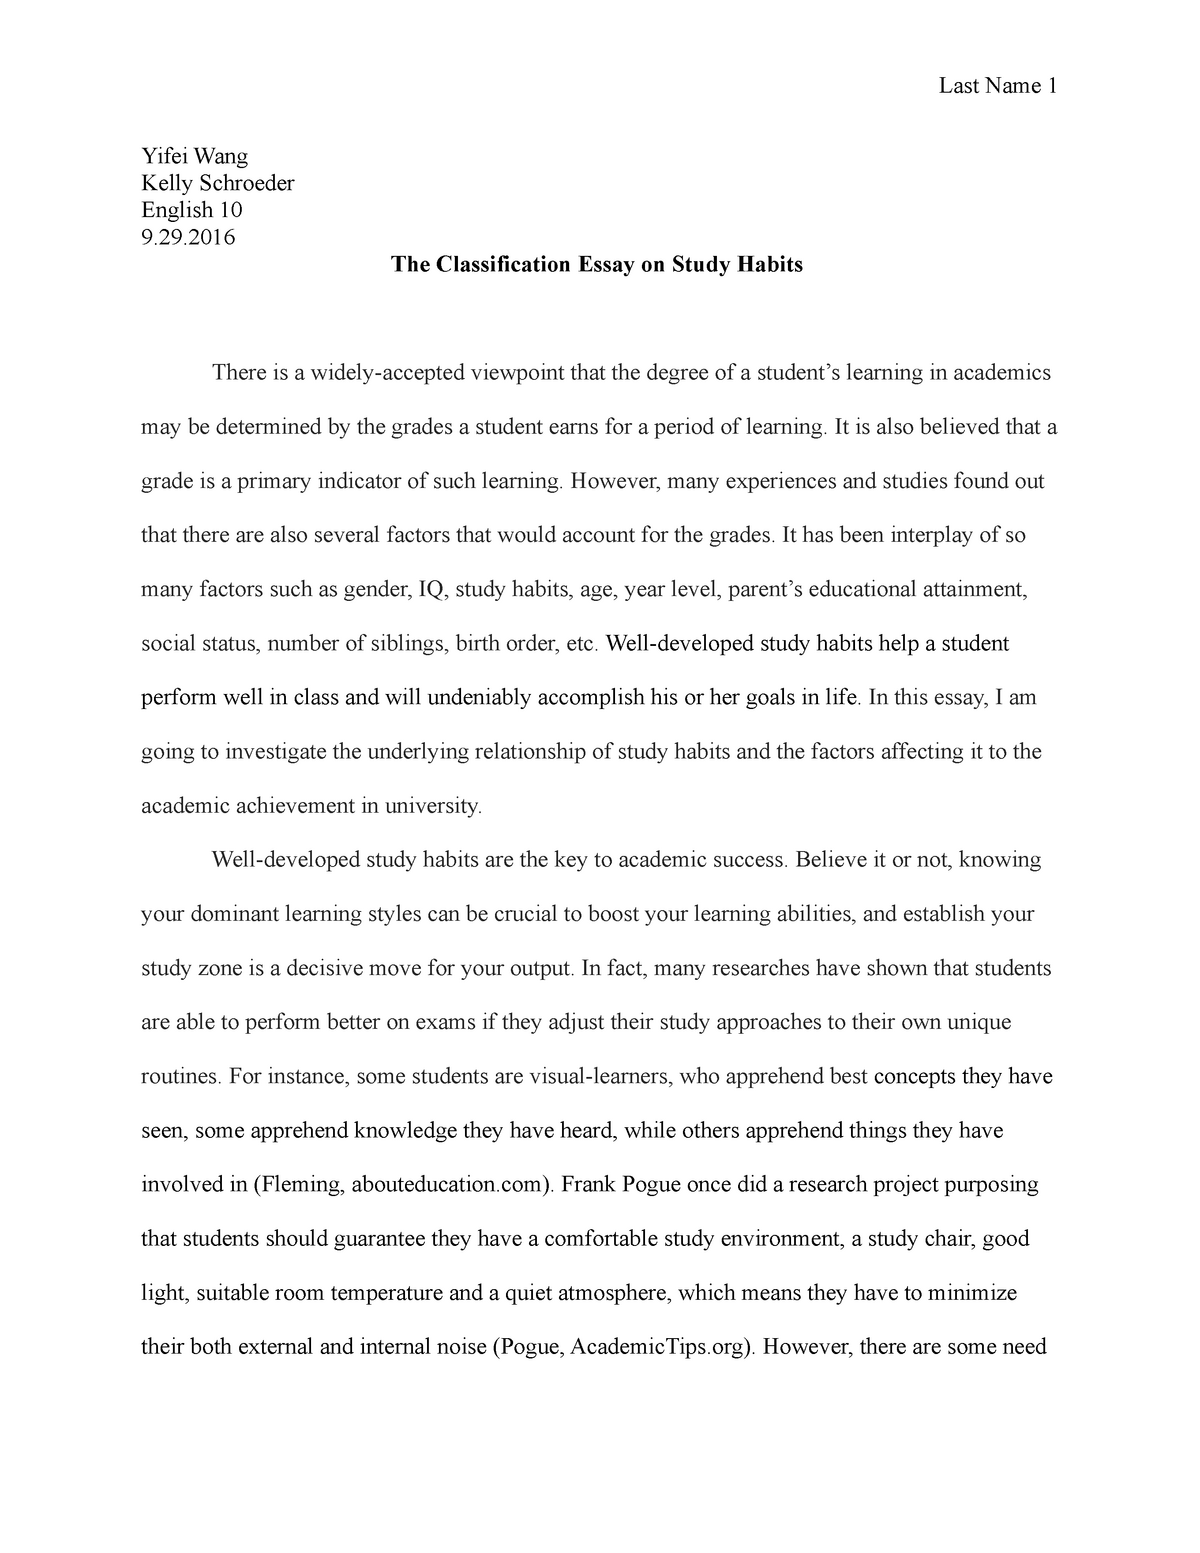 the classification essay on study habits   english  english   studocu